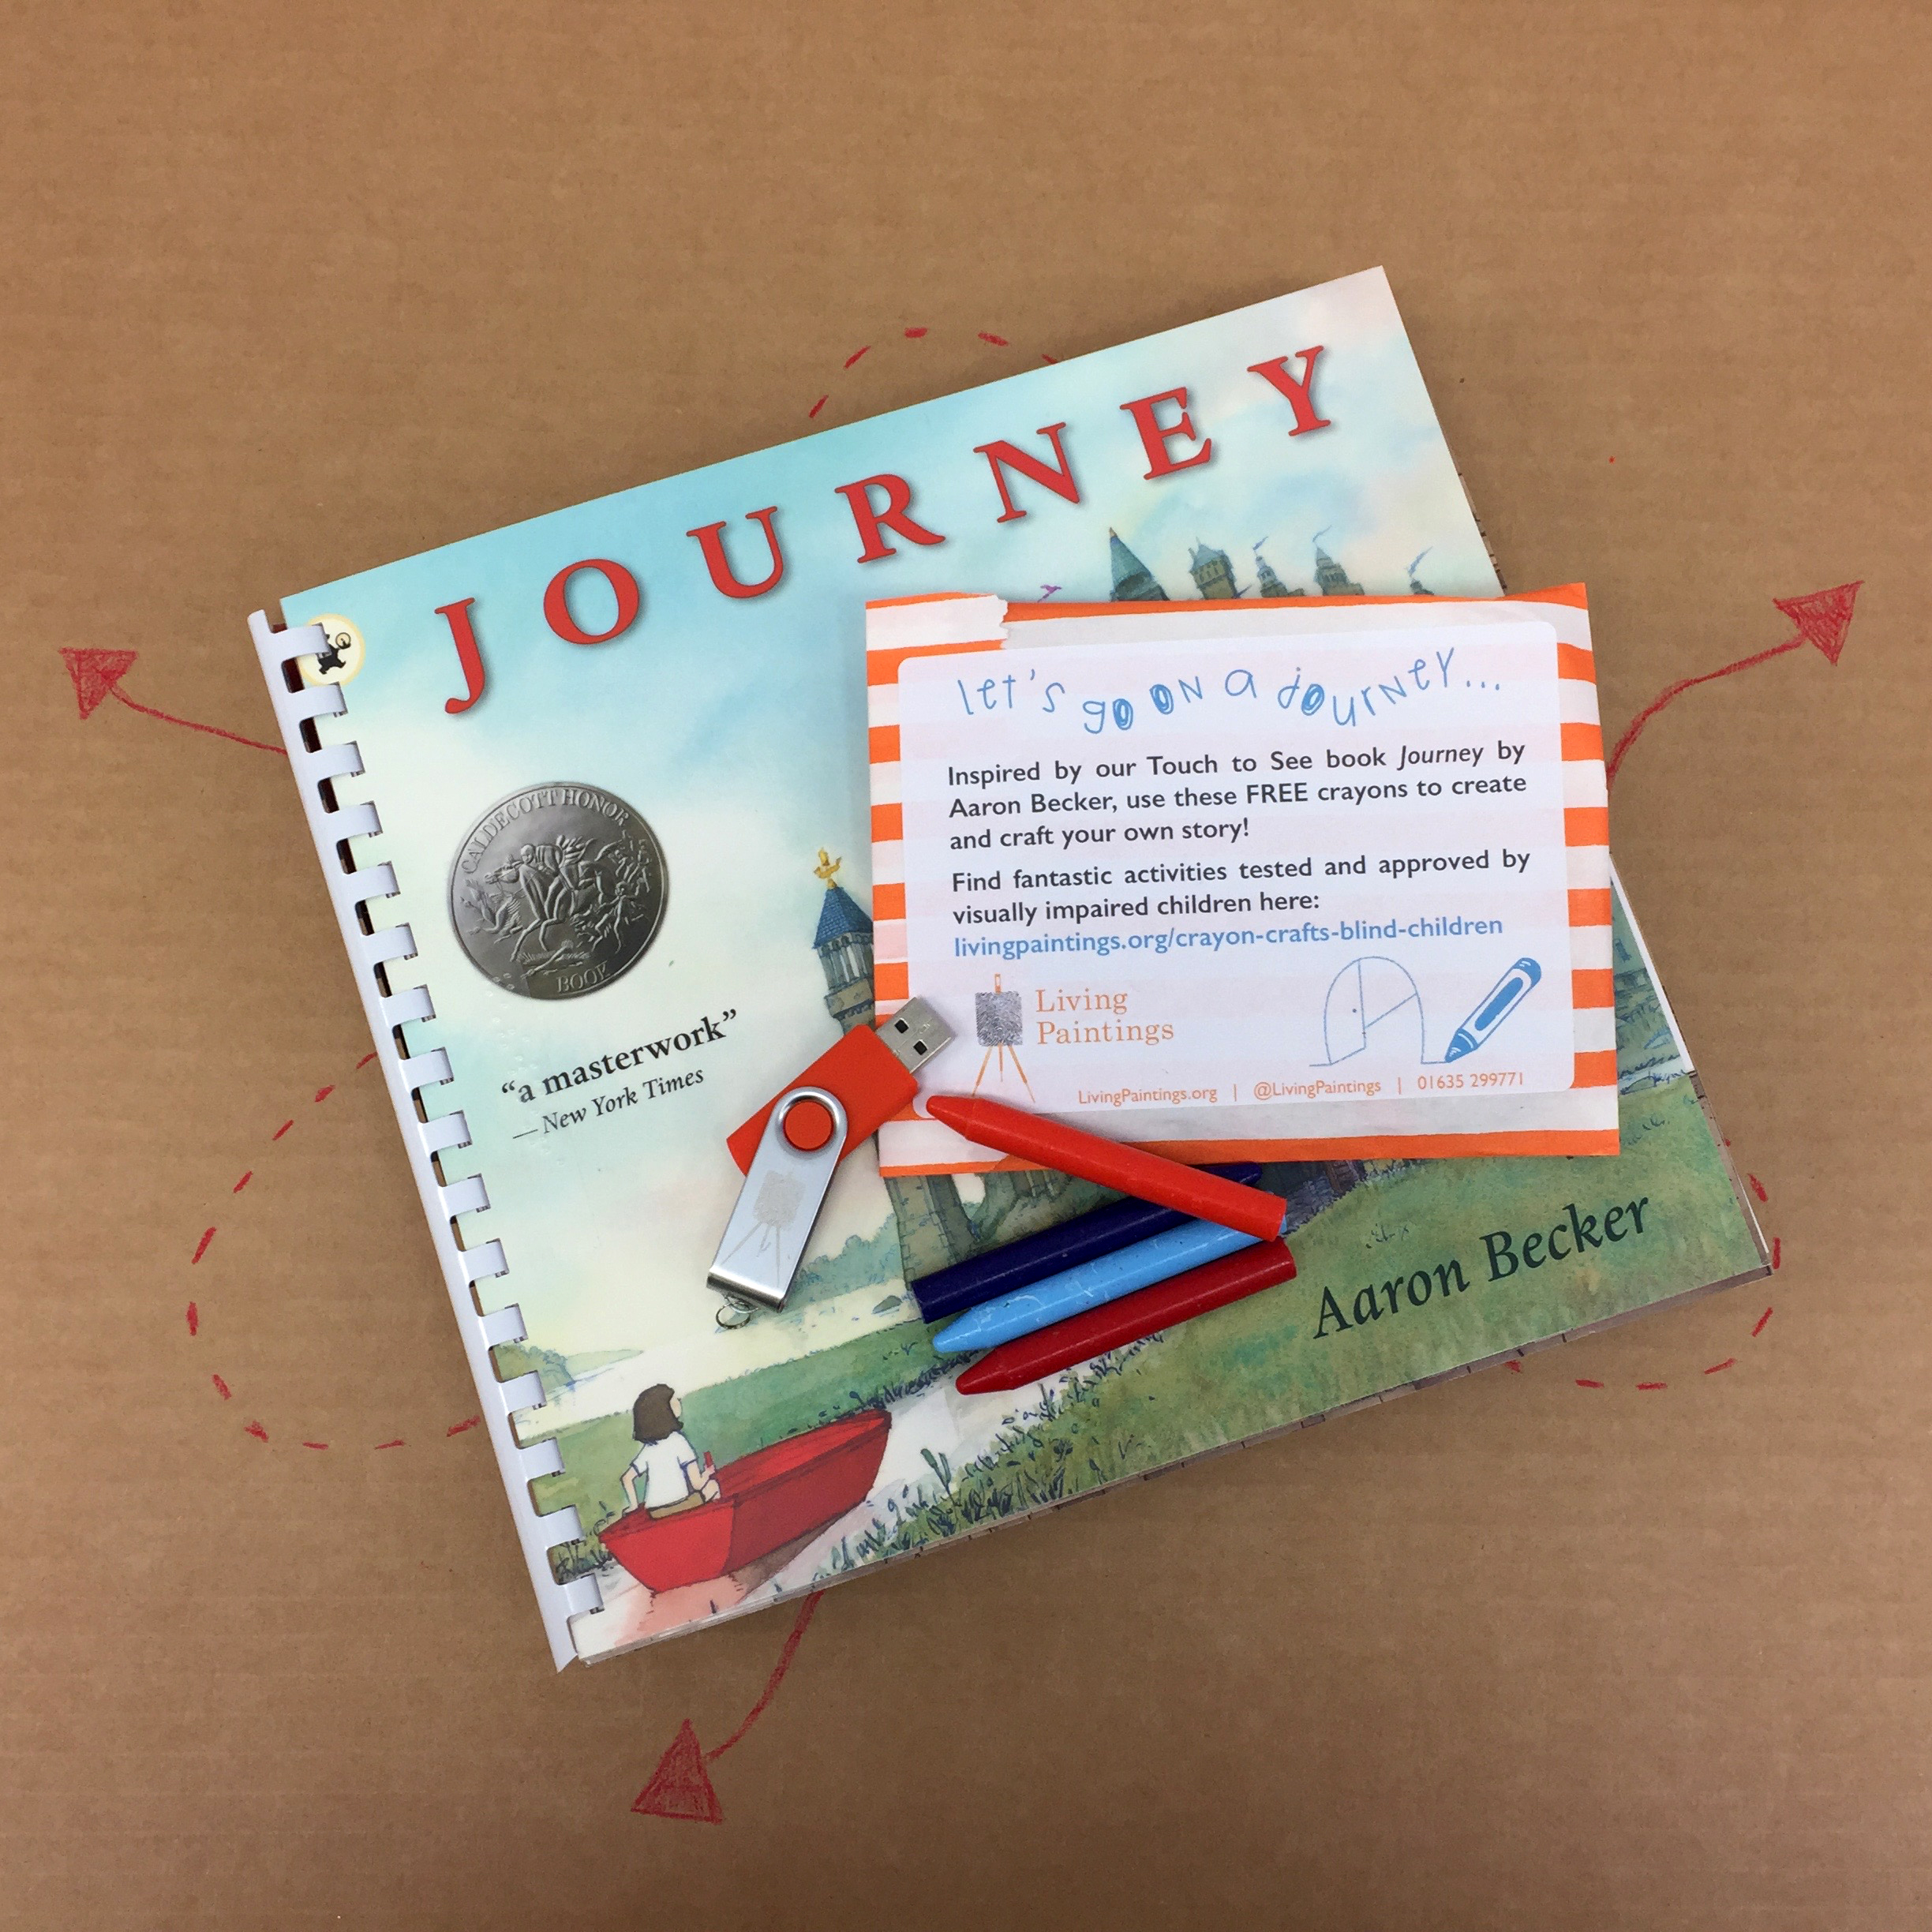 A copy of Journey with a packet of crayons and a USB